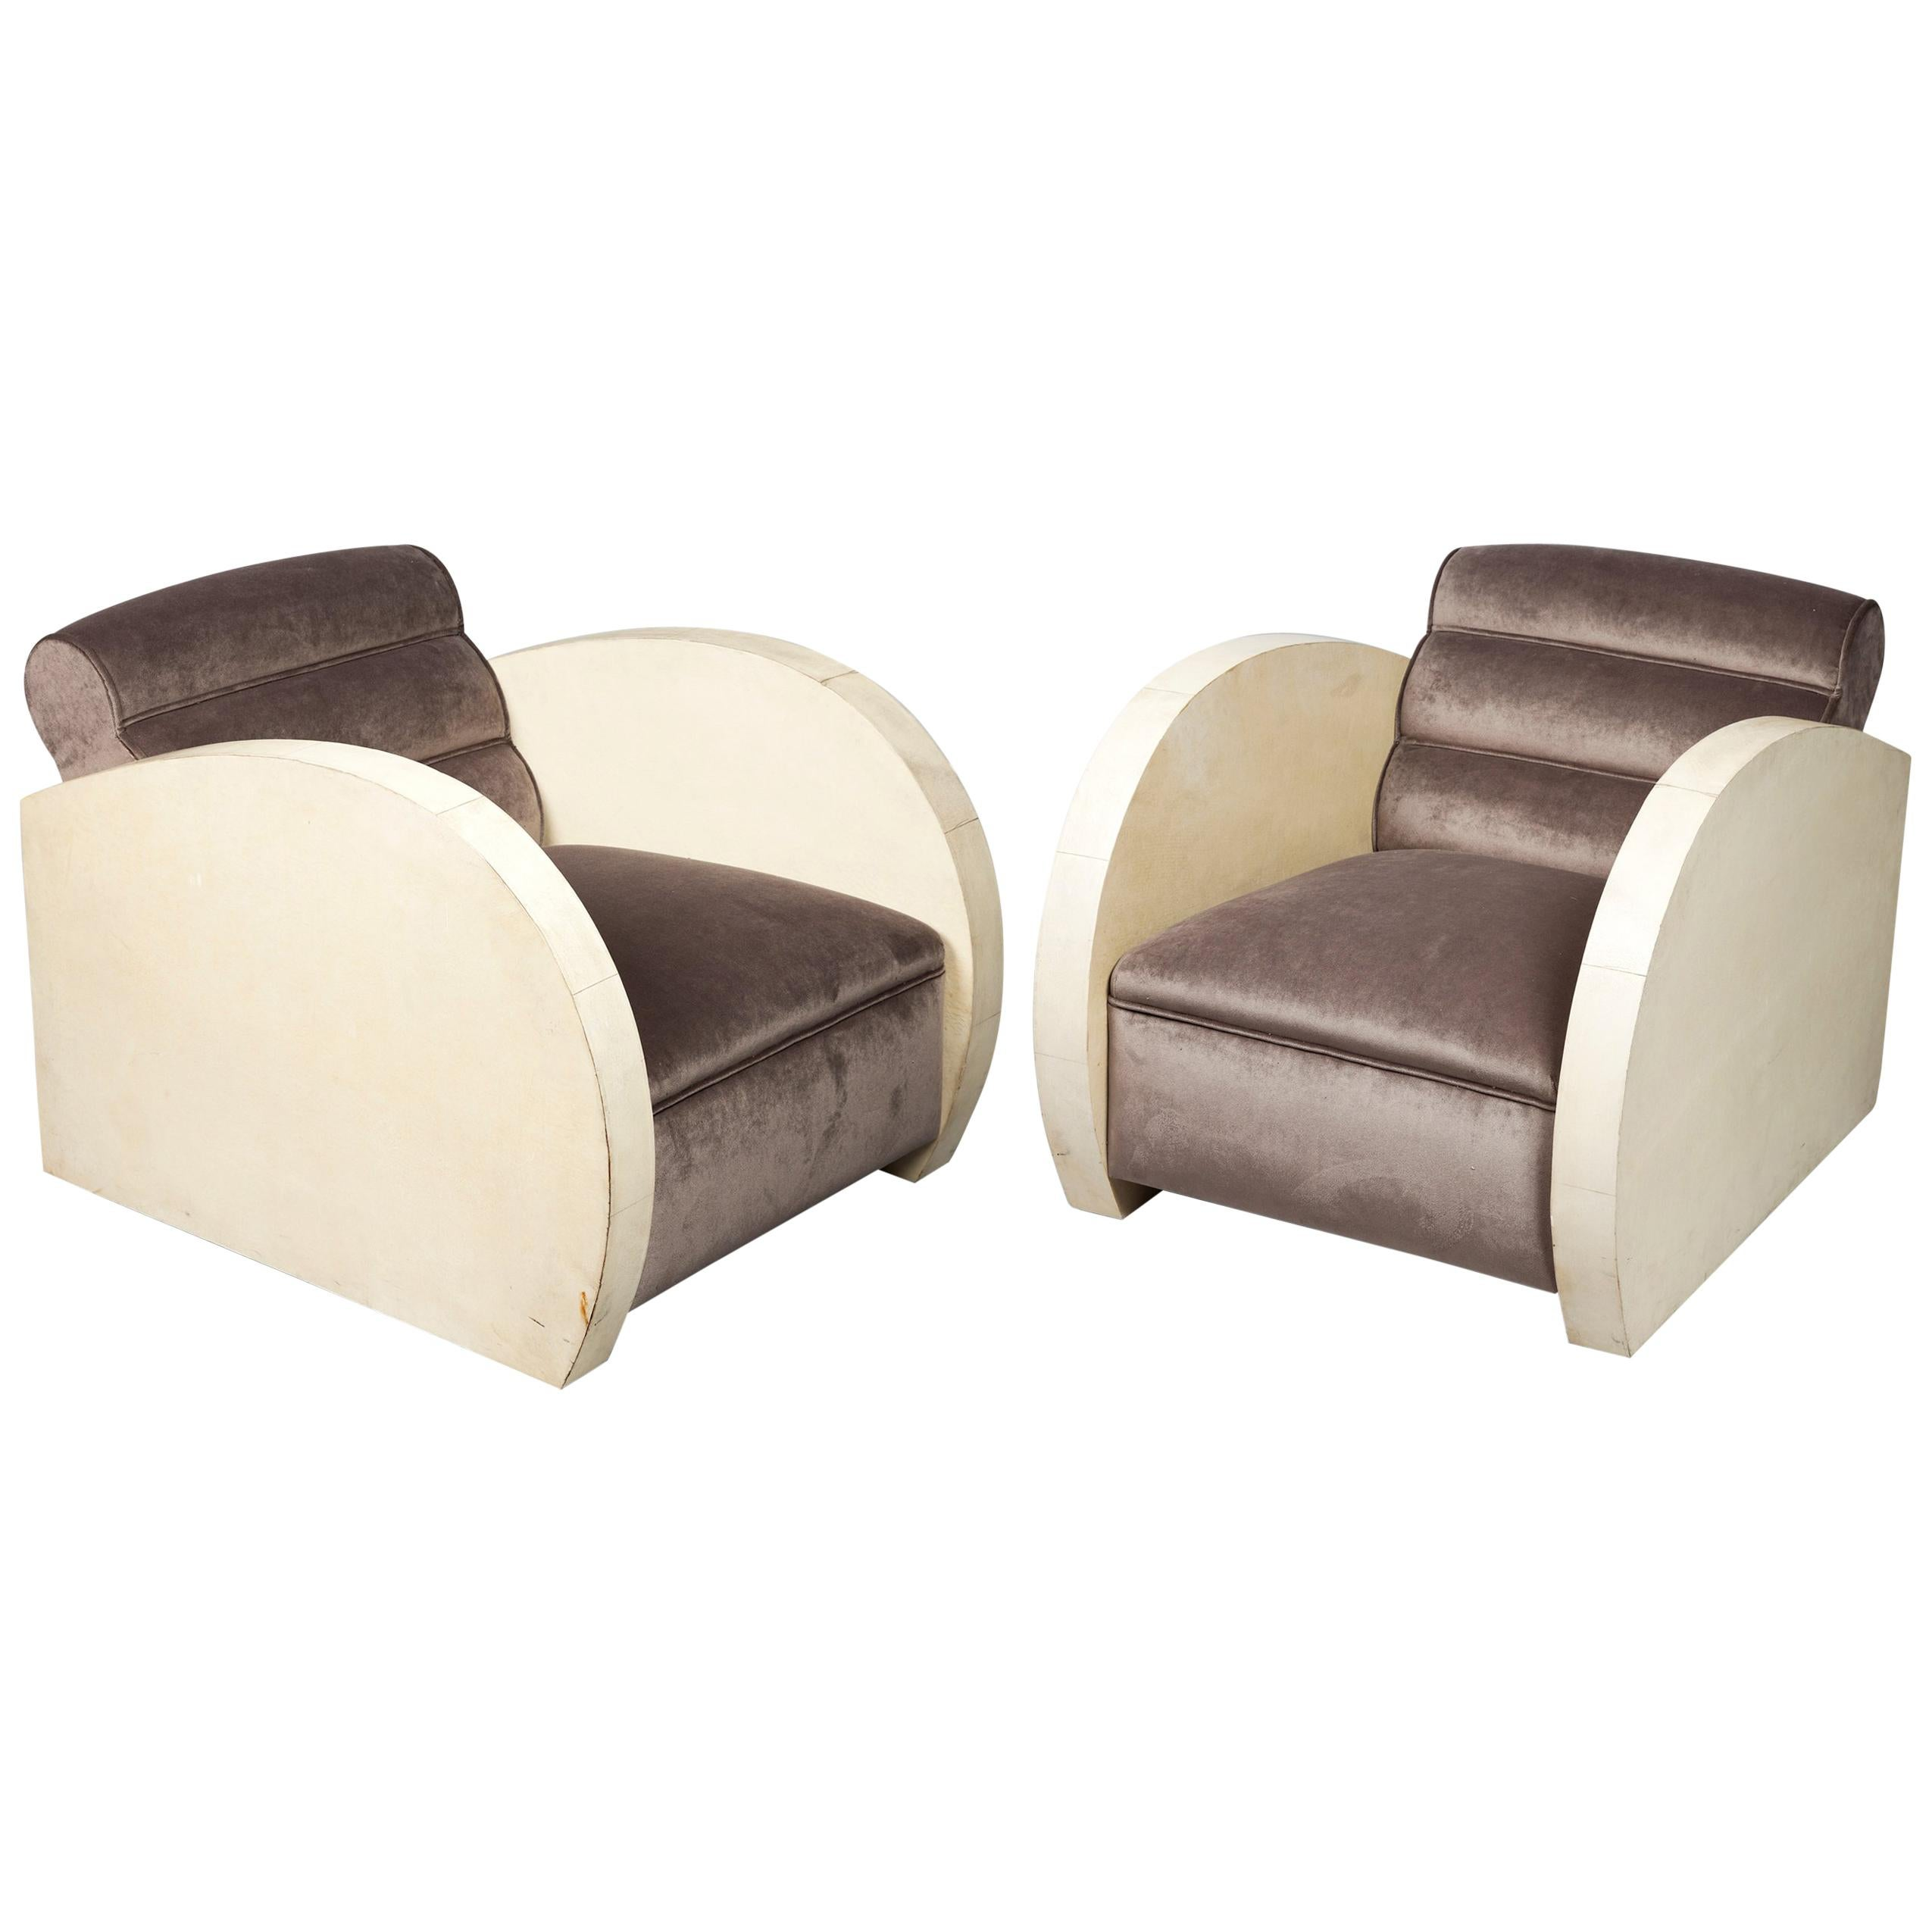 Art Deco Armchairs Covered in Parchment and Upholstered in Taupe Velvet